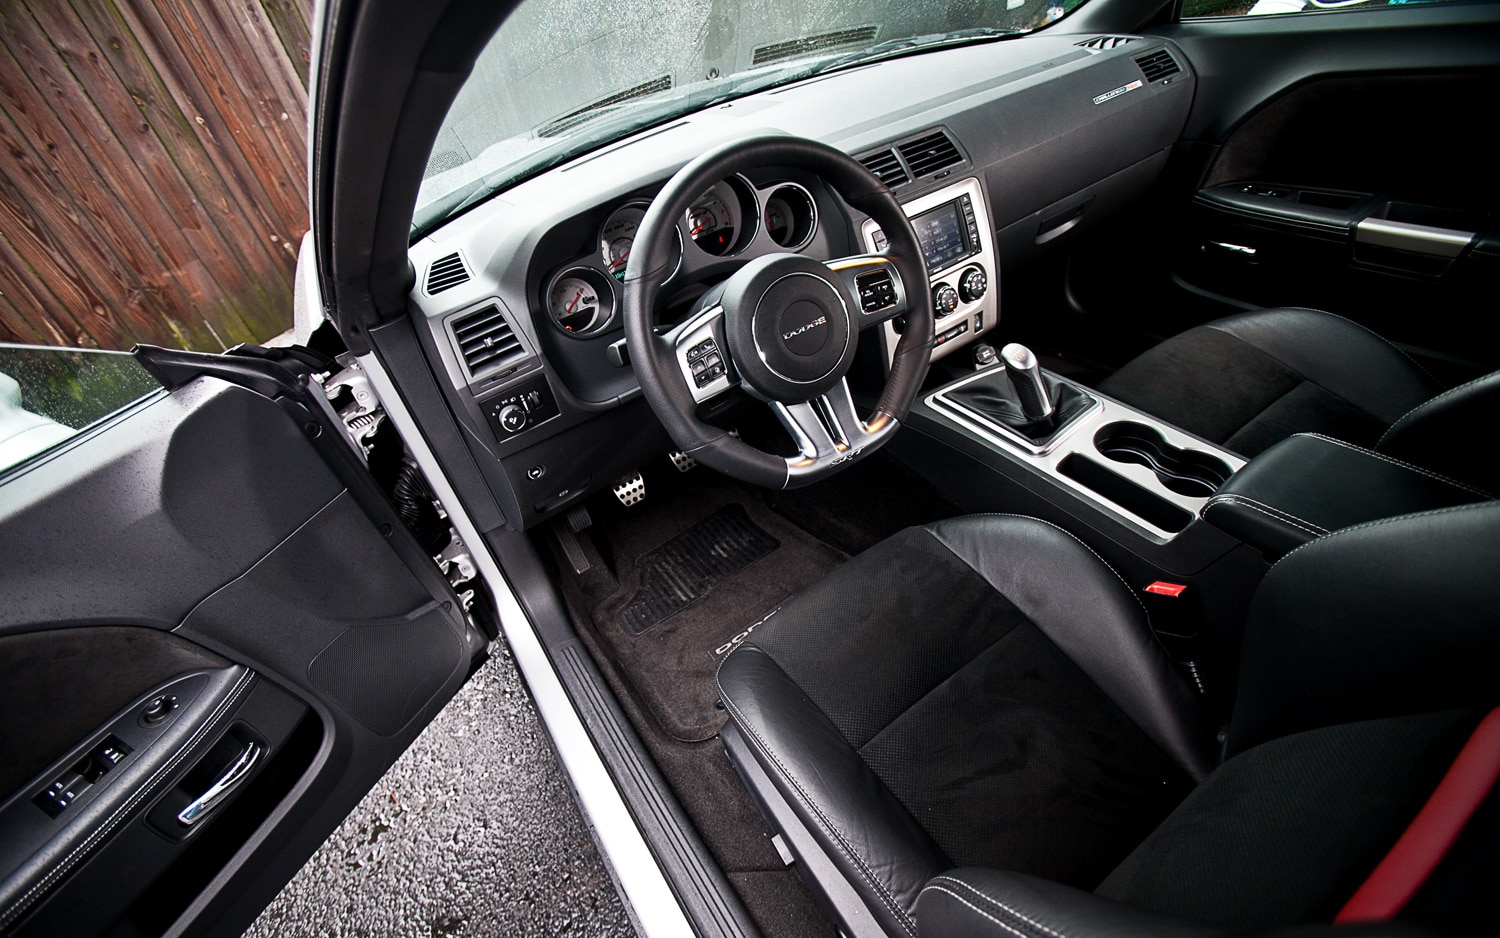 2012 dodge challenger srt8 392 front interior1